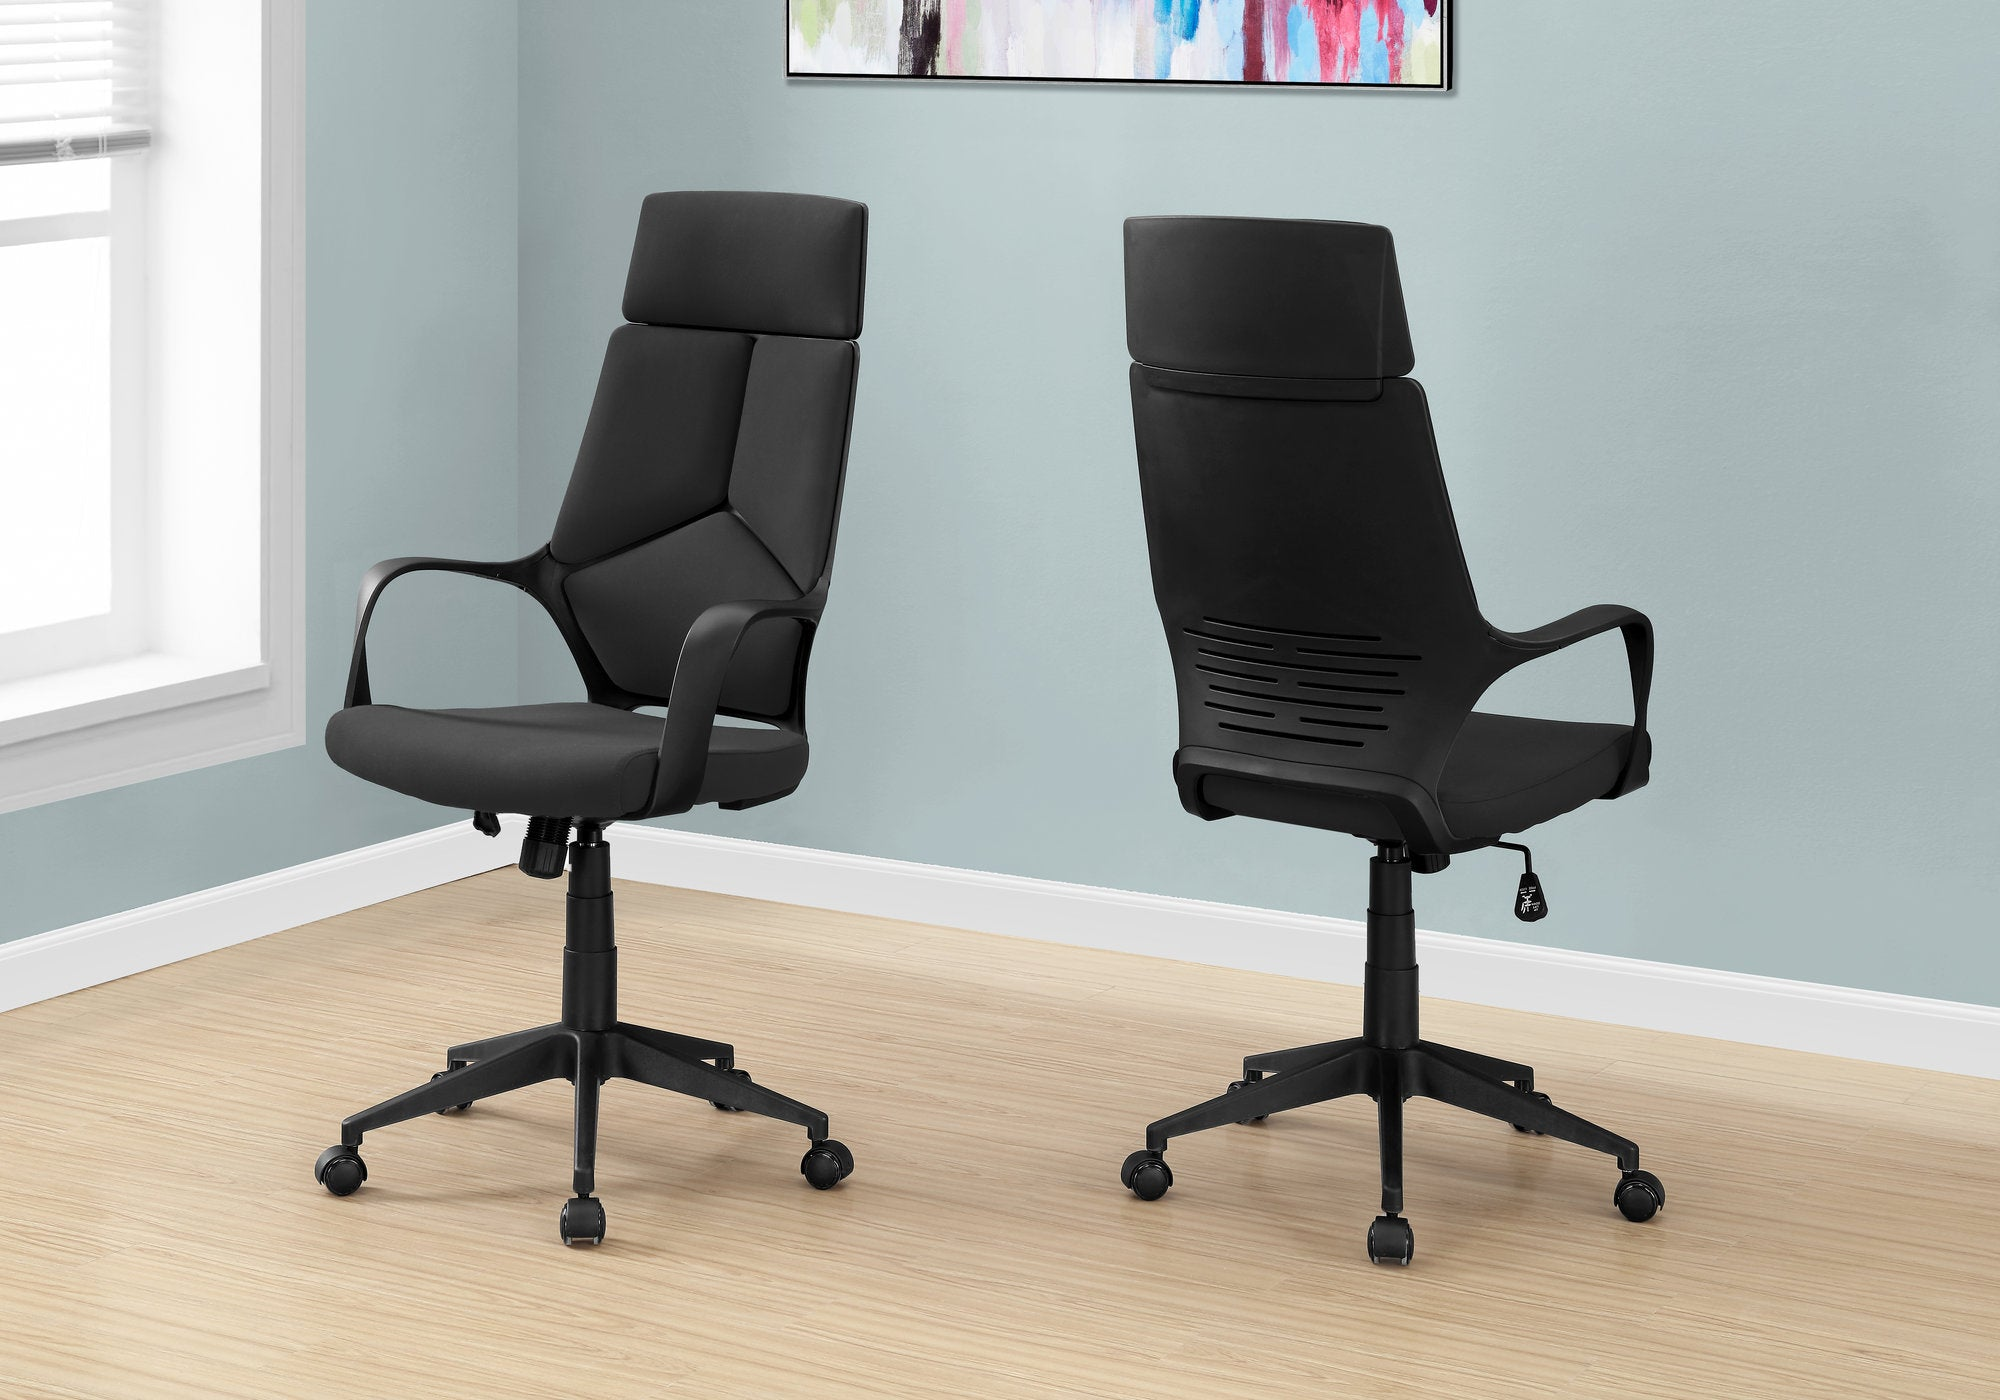 I 7272 - OFFICE CHAIR - BLACK / BLACK FABRIC / HIGH BACK EXECUTIVE